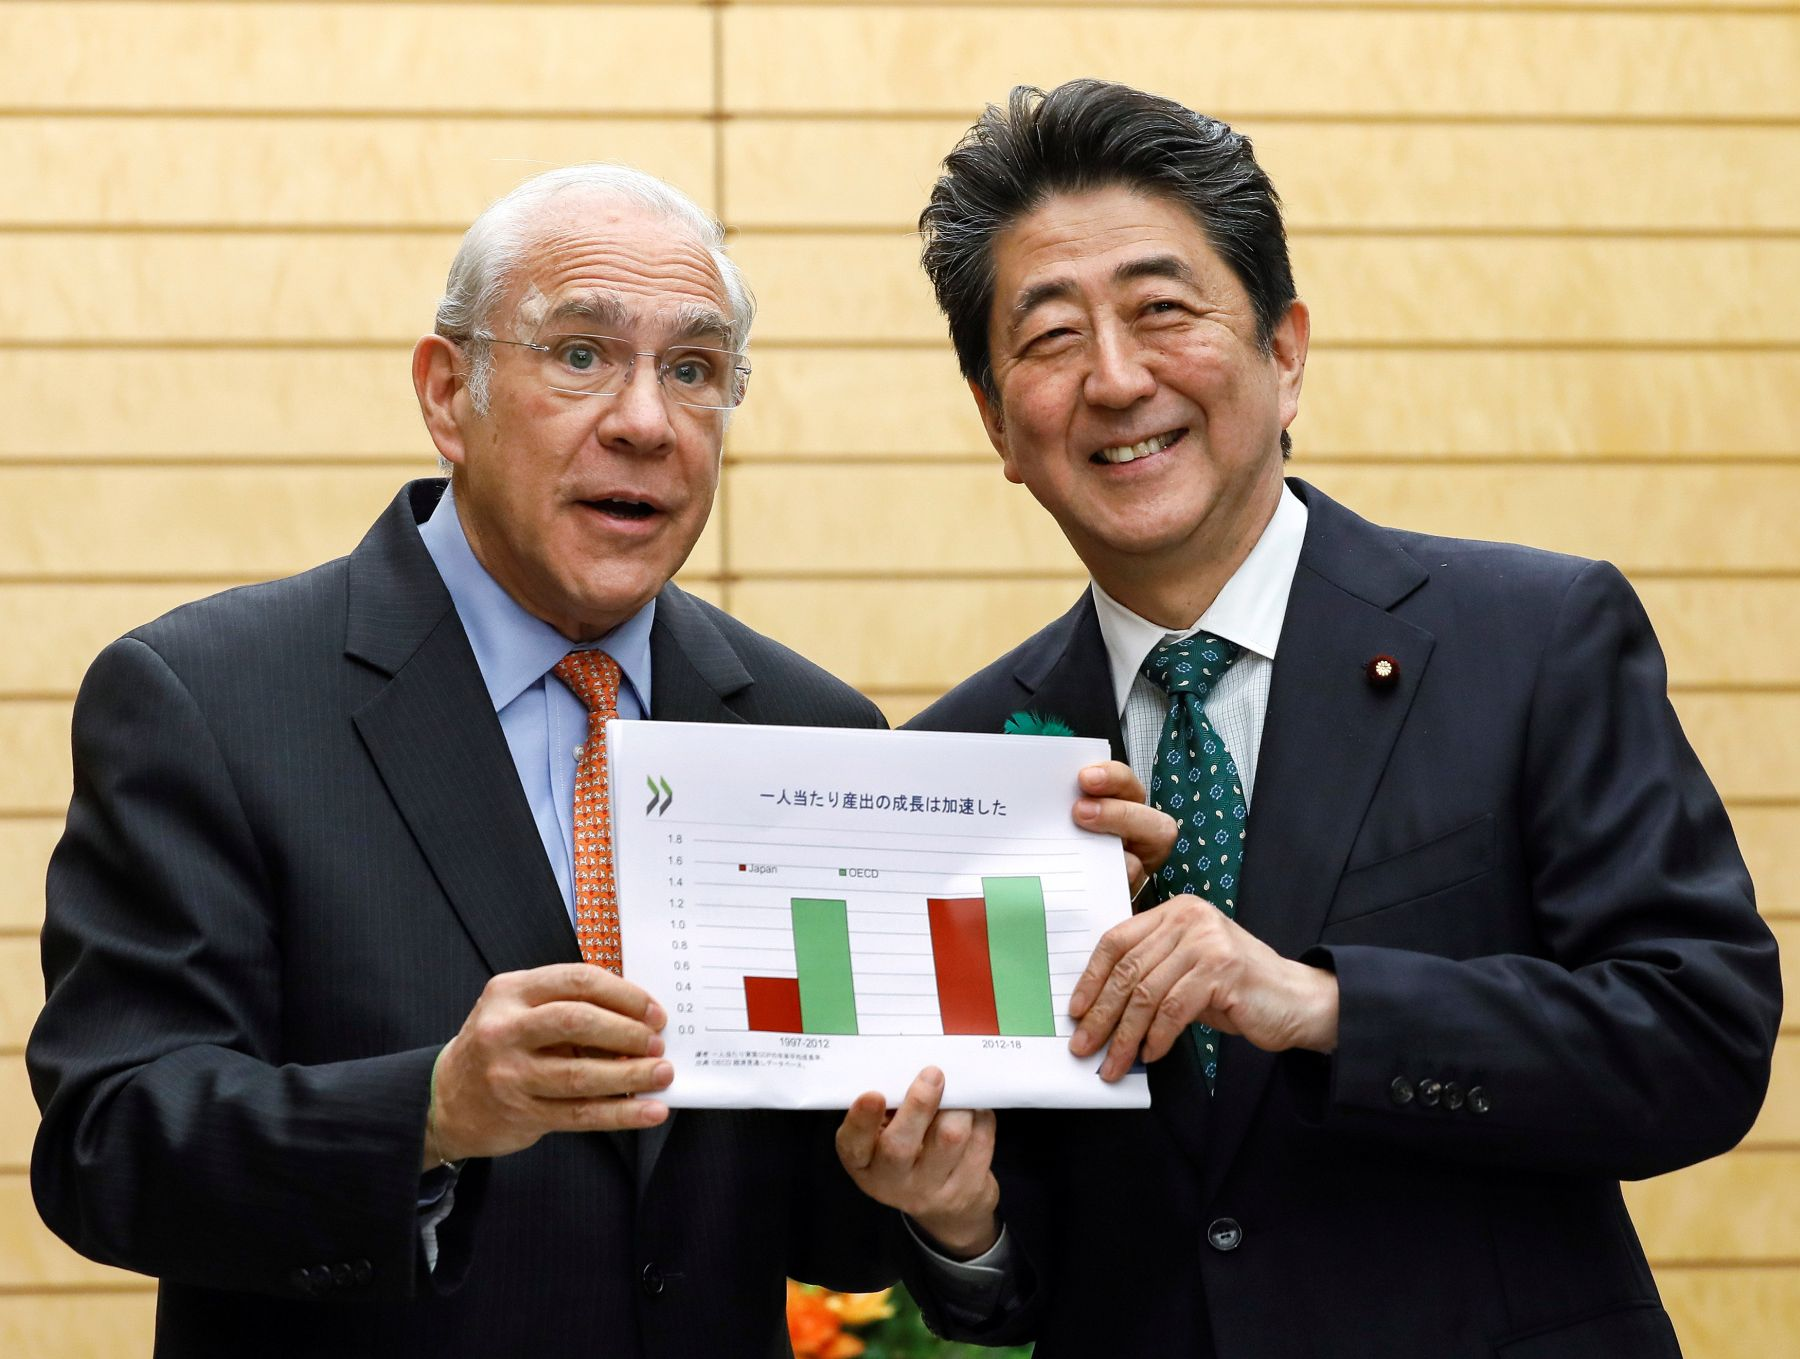 Angel Gurria, Secretary-General of the Organisation for Economic Co-operation and Development (OECD), shows Japan's gross domestic product (GDP) growth rate and OECD's growth rate from OECD's recent annual report with Japanese Prime Minister Shinzo Abe dur